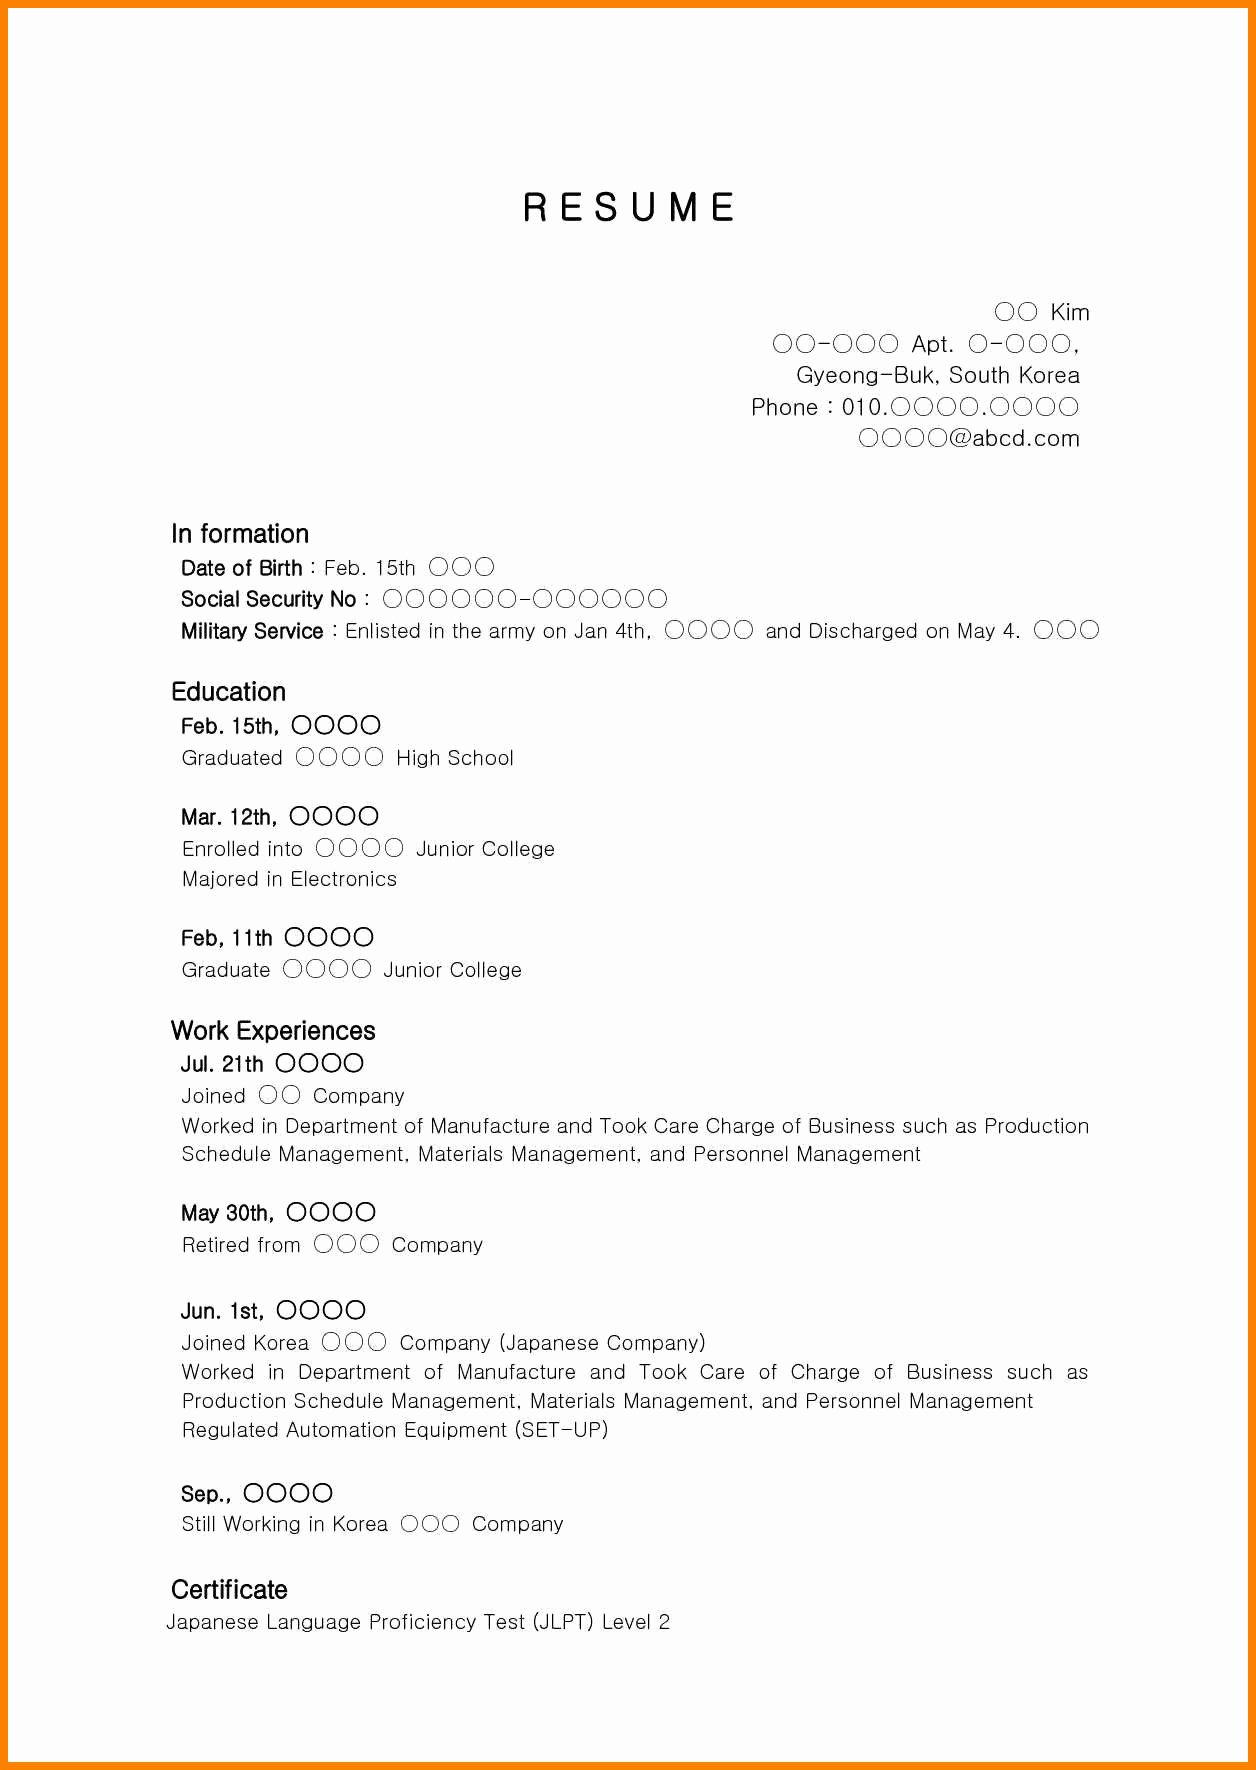 No Experience Resume Template Fresh Example High School Student Resume with No Experience